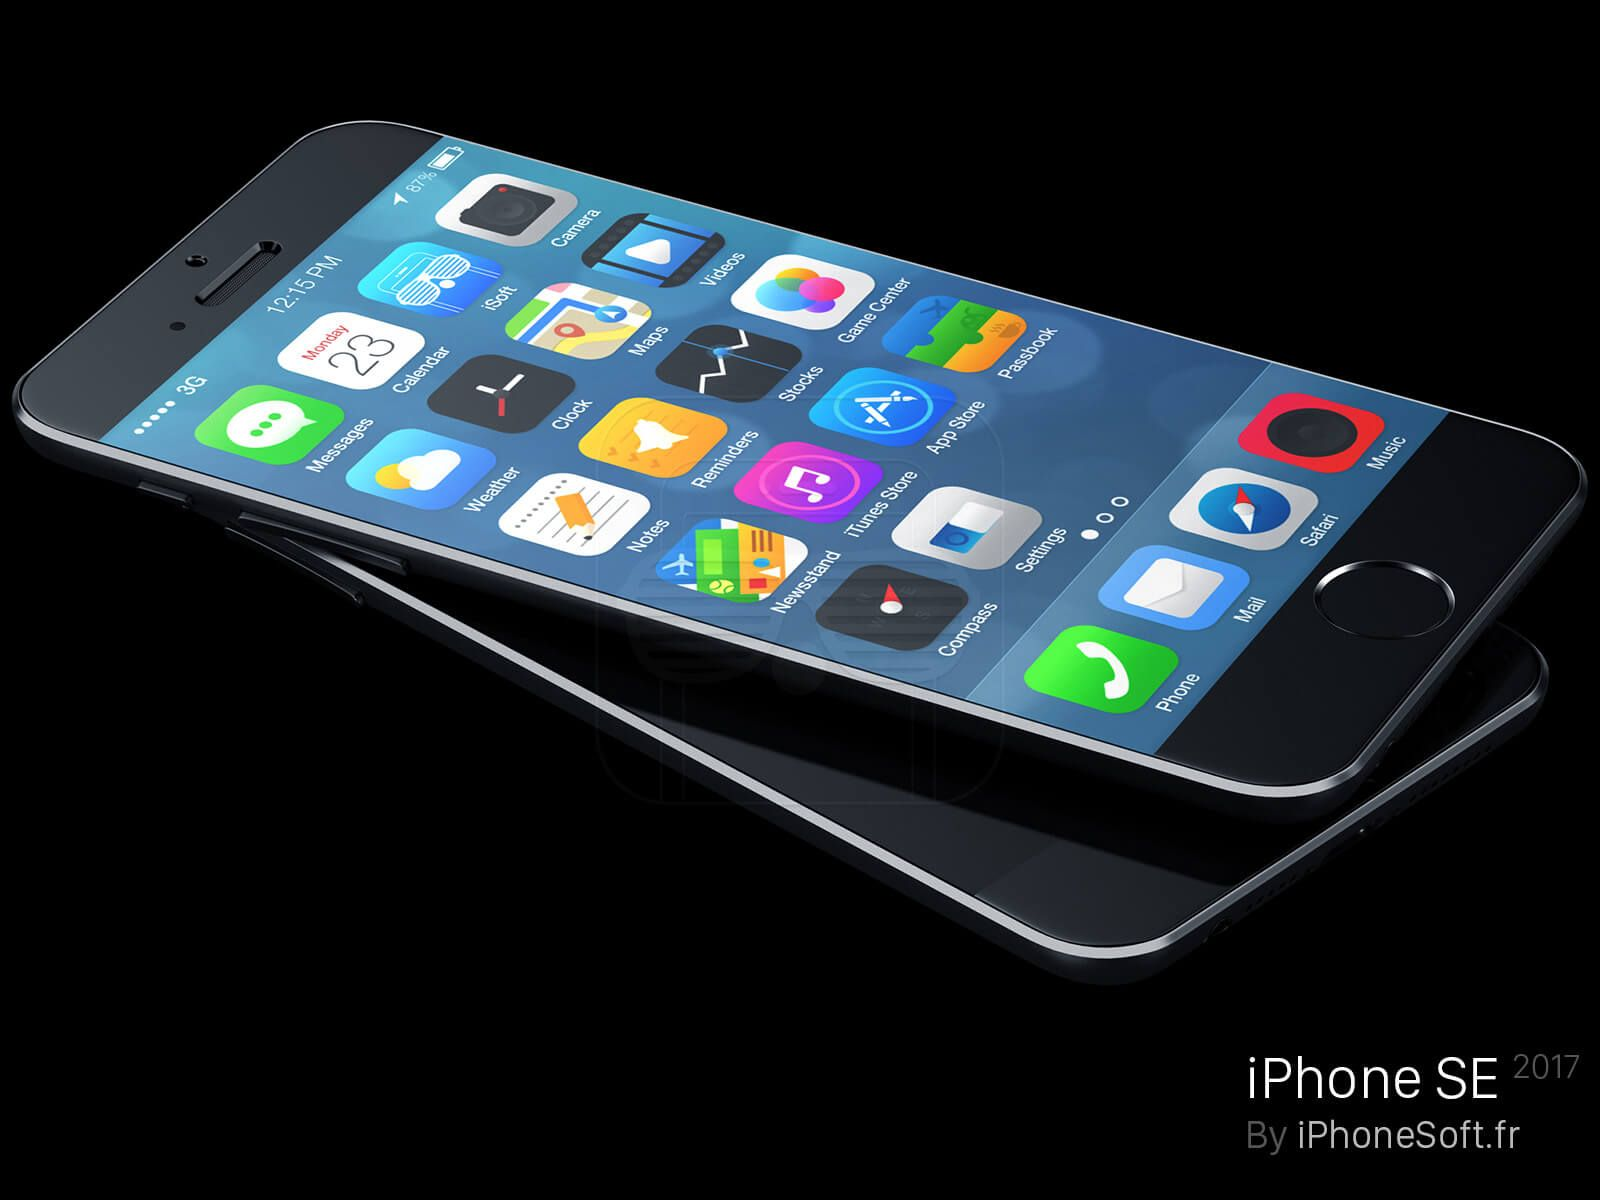 iphone se 2017 iphonesoft isoft concept 1